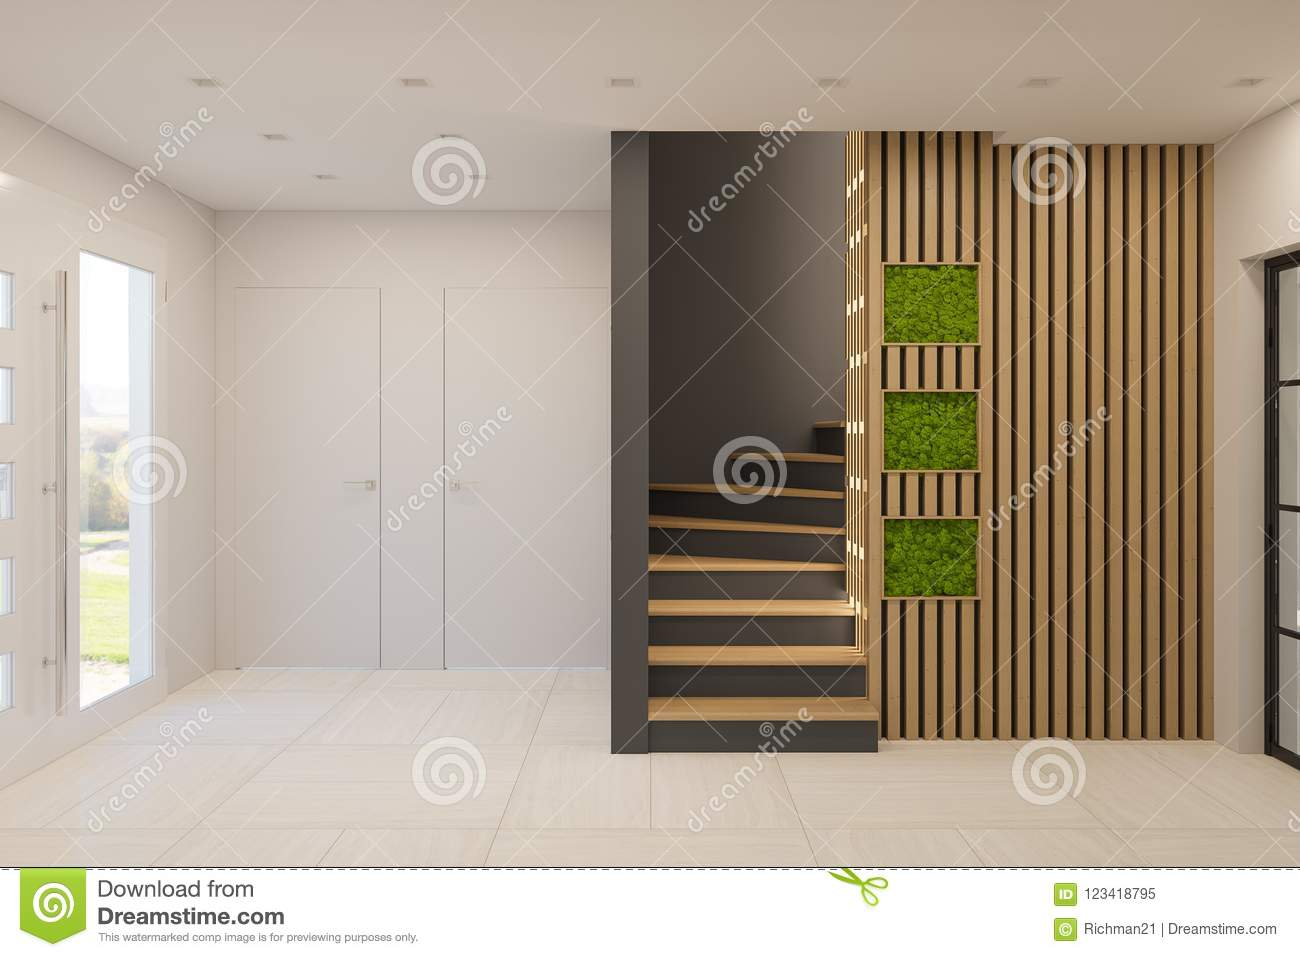 Interior design of a foyer in a private country house staircase in modern scandinavian style ecological style of the interior stabilized moss